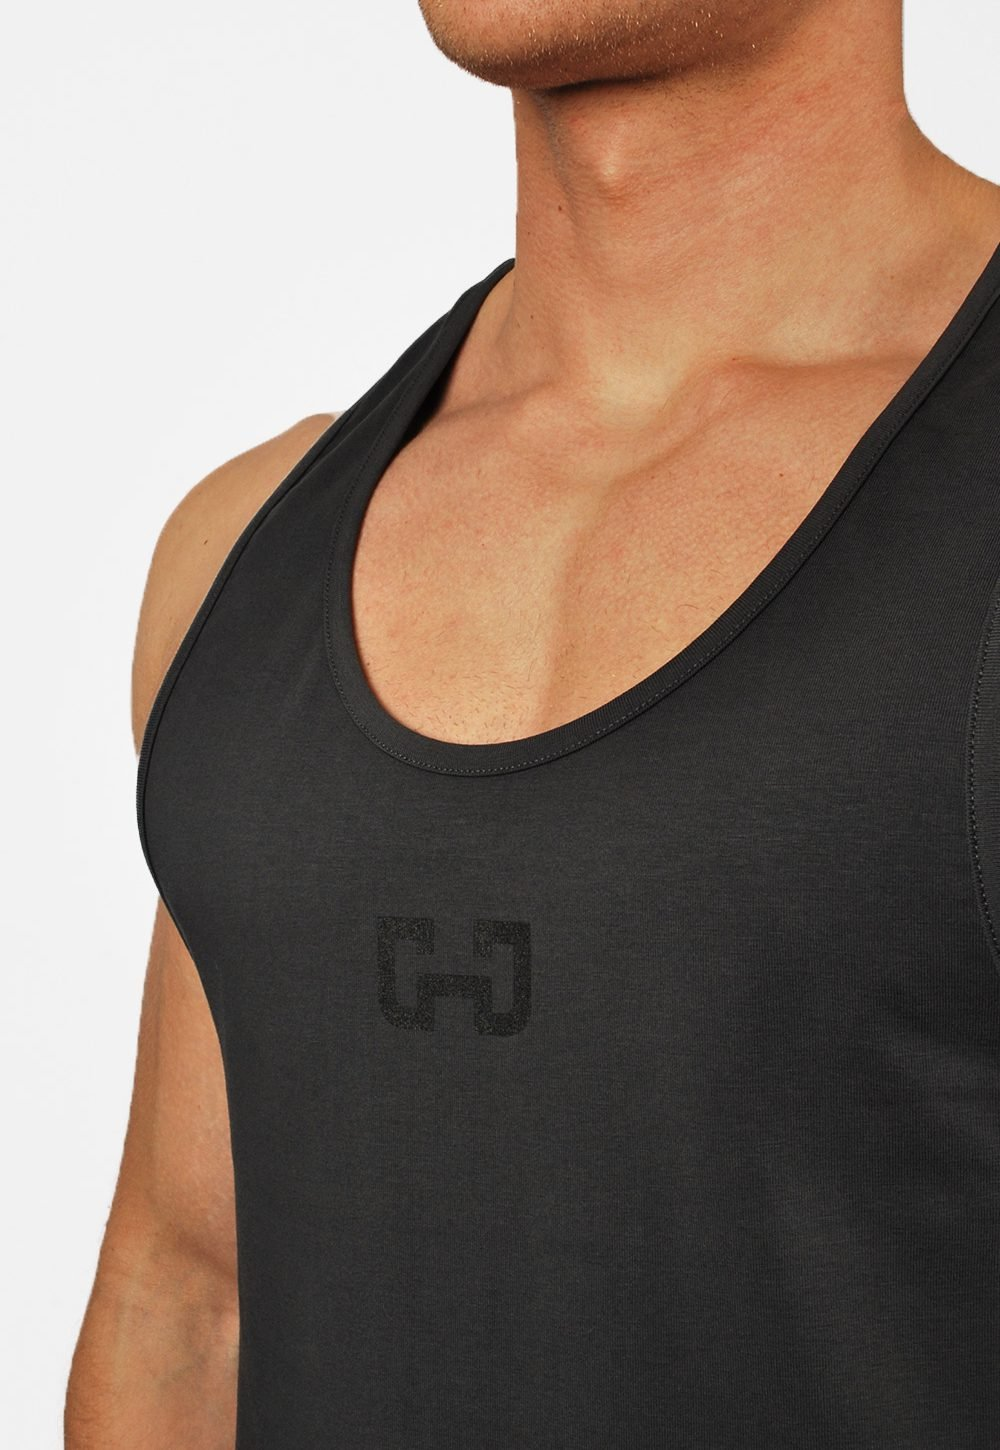 GYMJUNKY Sole Tank Top ACHSEL Shirt Muskelshirt Fitness//Forza Sport Bodybuilding Tanktop